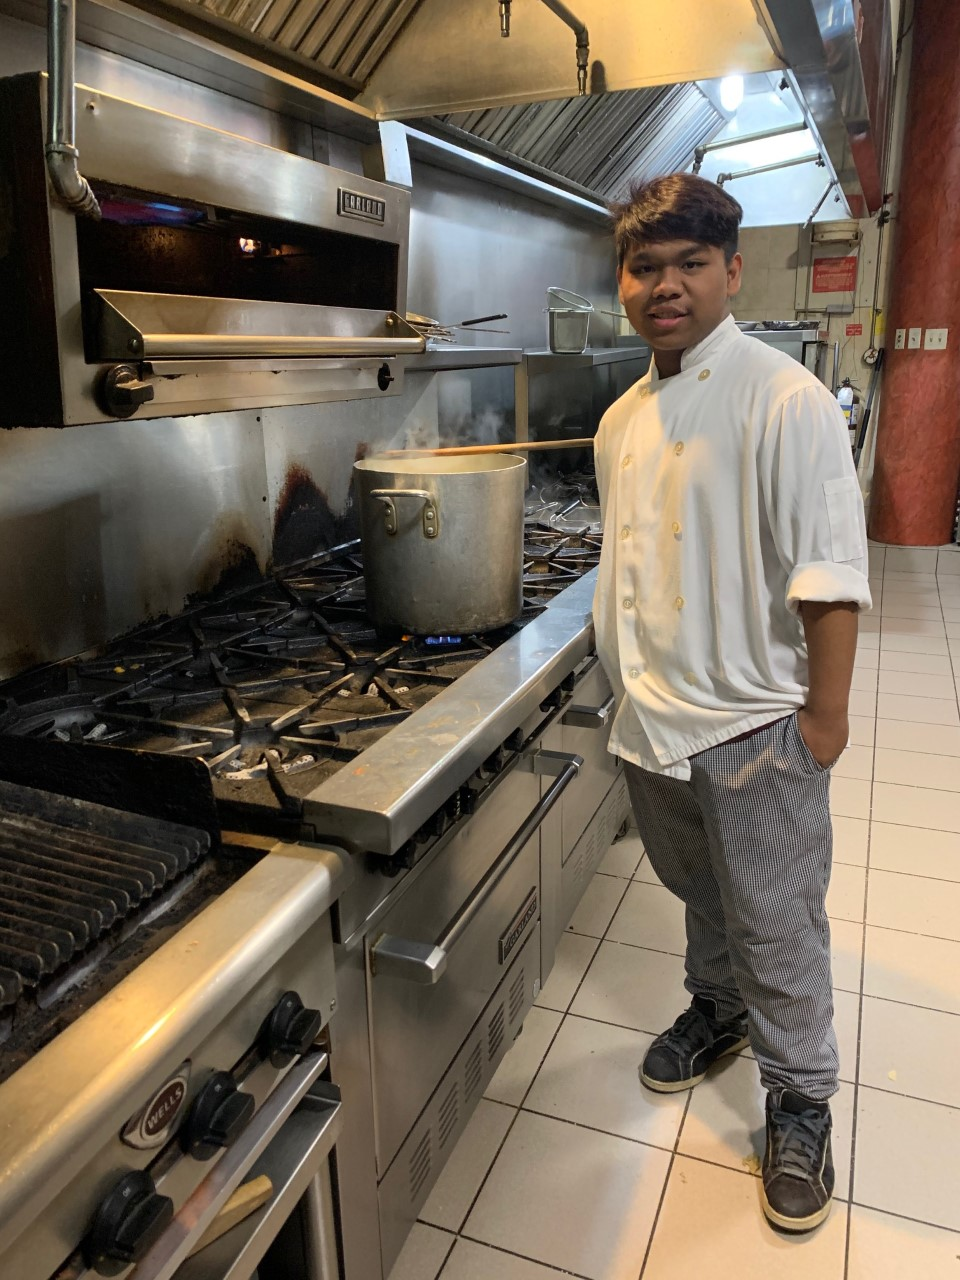 Male student standing beside an oven in a restaurant's kitchen